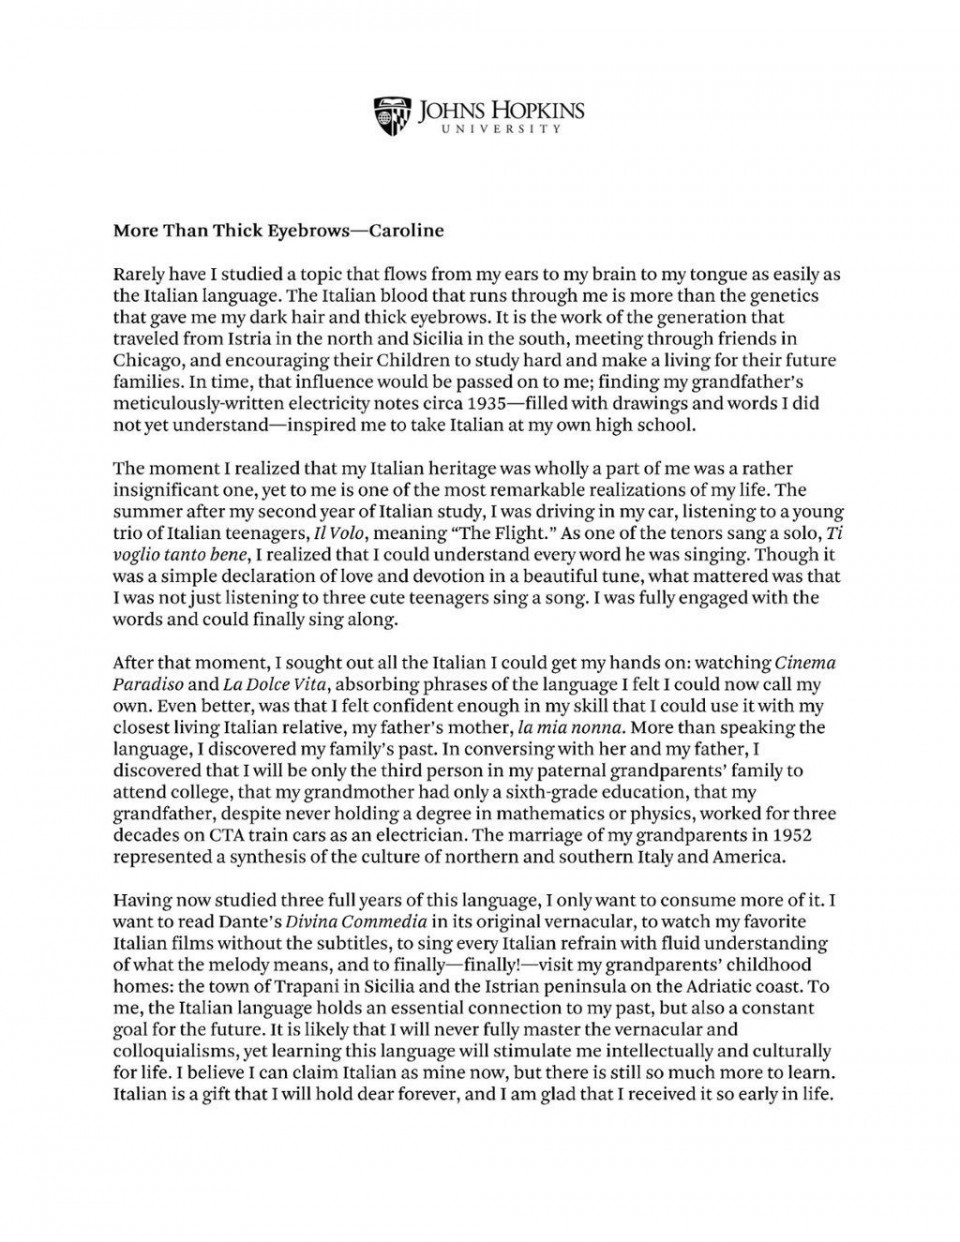 009 Excellent College Application Essay Outline Example Photo  Admission Format Heading Narrative Template960